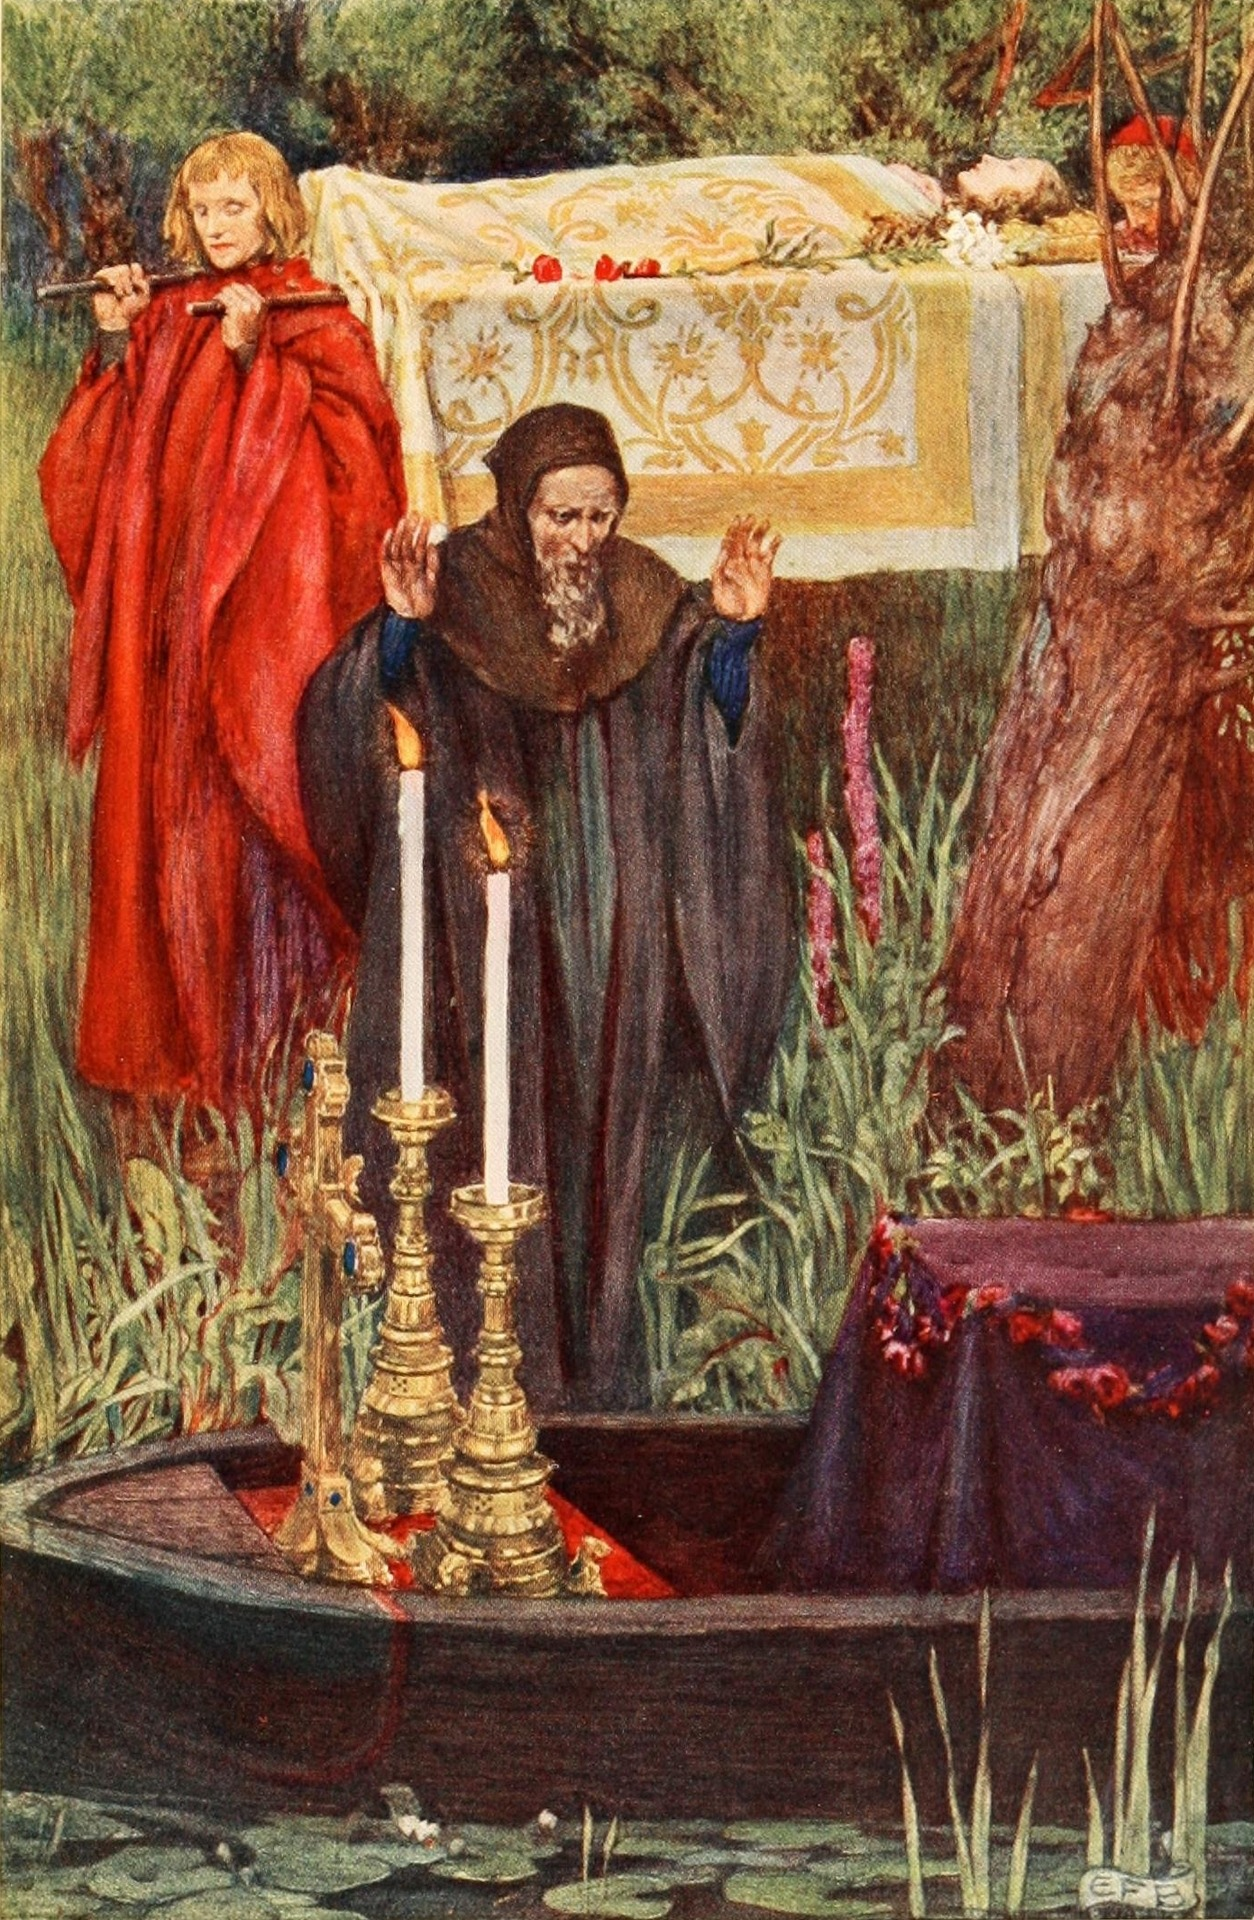 Eleanor Fortescue-Brickdale ~ Idylls of the King by Alfred Lord Tennyson ~ 1913 ~ via Illustration for Elaine So those two brethren from the chariot took and on the black decks laid her in her bed.